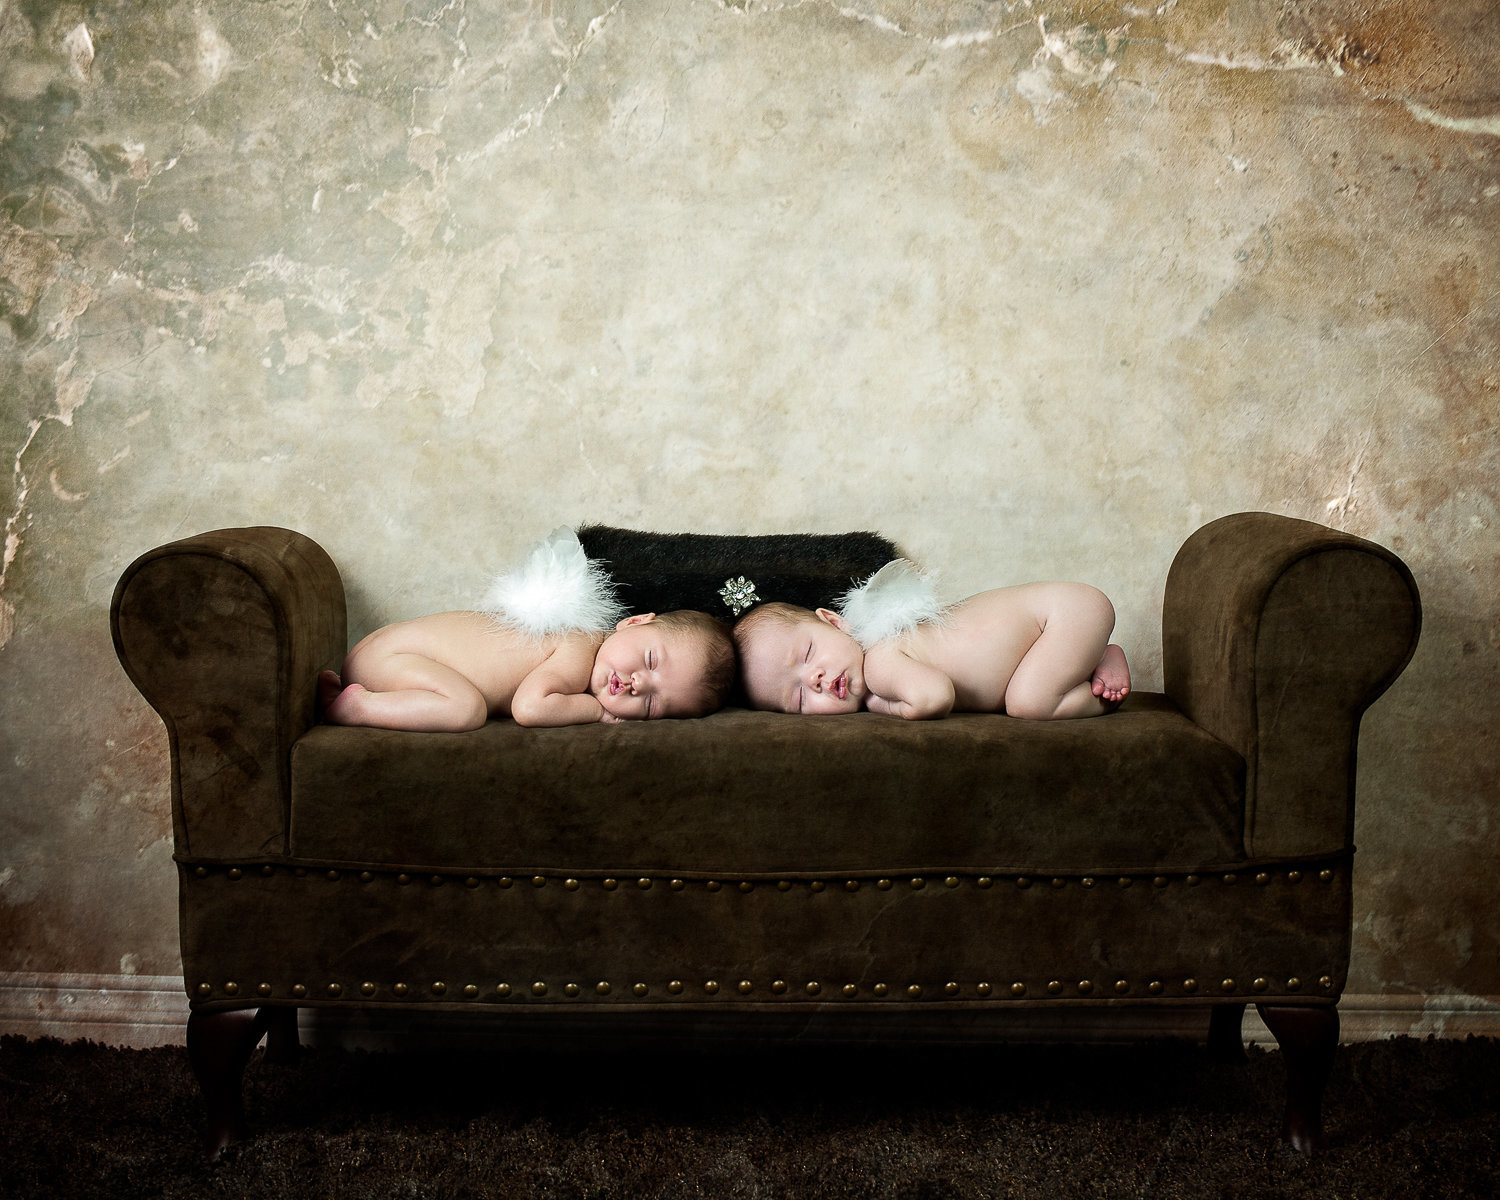 newborn twins with angel wings sleeping on couch with textured background